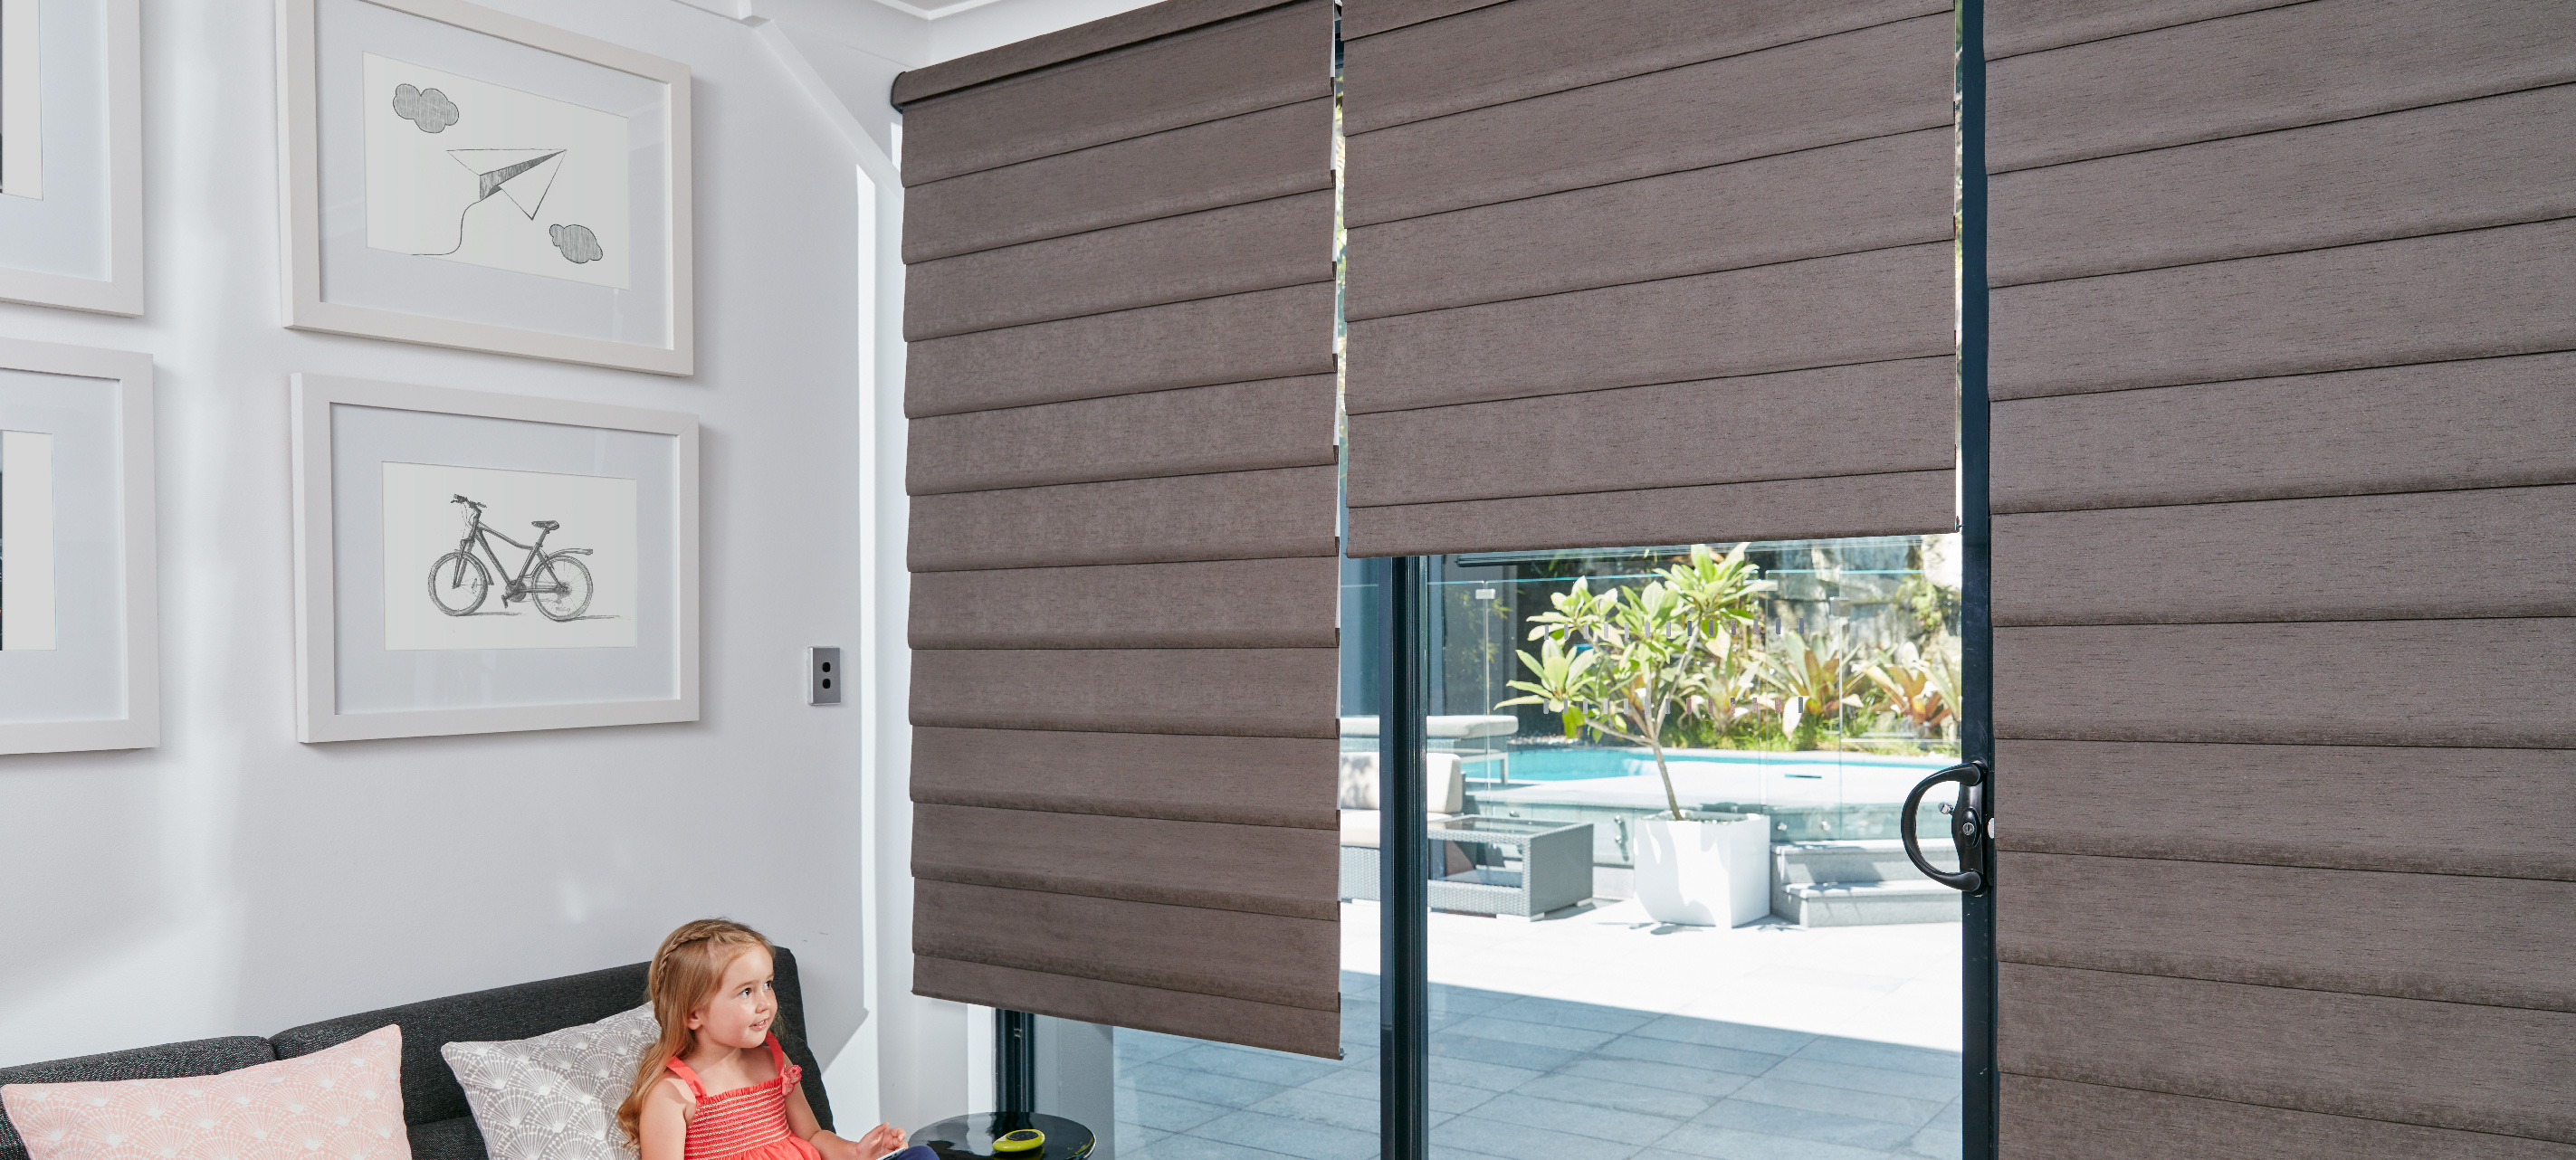 Luxaflex - Products - Softshades and Fabrics - Modern Roman Shades Banner 2 image